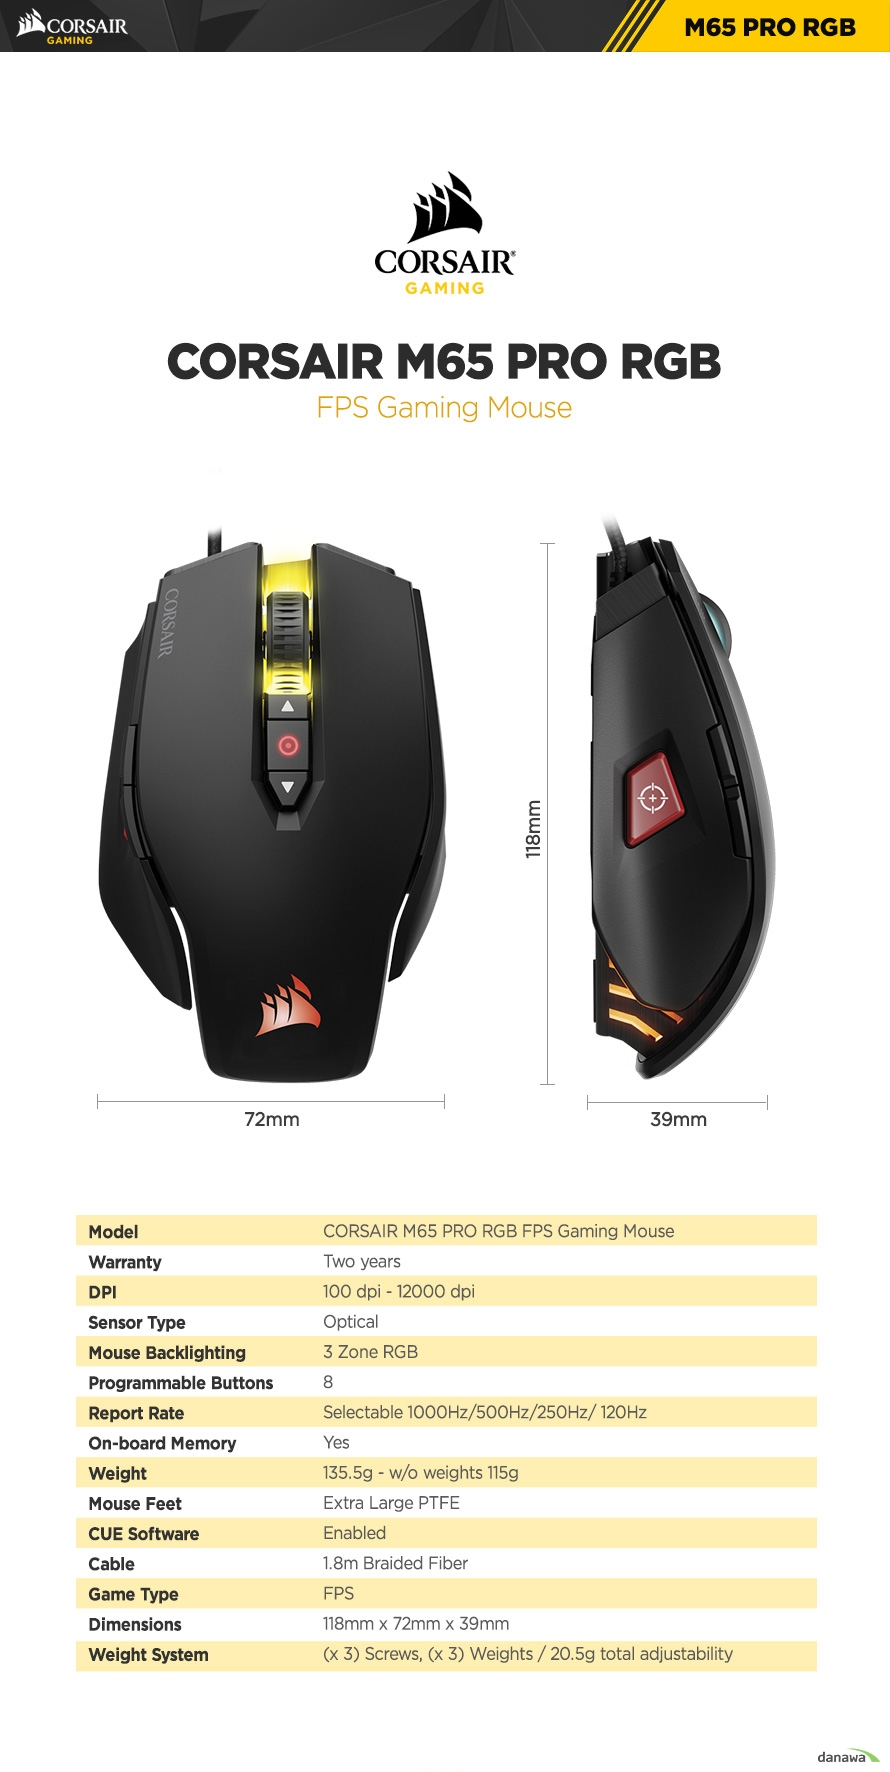 Model	CORSAIR M65 PRO RGB FPS Gaming MouseWarranty	Two yearsDPI	100 dpi - 12000 dpiSensor Type	OpticalMouse Backlighting	3 Zone RGBProgrammable Buttons	8Report Rate	Selectable 1000Hz/500Hz/250Hz/ 120HzOn-board Memory	YesWeight	135.5g - w/o weights 115gMouse Feet	Extra Large PTFECUE Software	EnabledCable	1.8m Braided FiberGame Type	FPSDimensions	118mm x 72mm x 39mmWeight System	(x 3) Screws, (x 3) Weights / 20.5g total adjustability